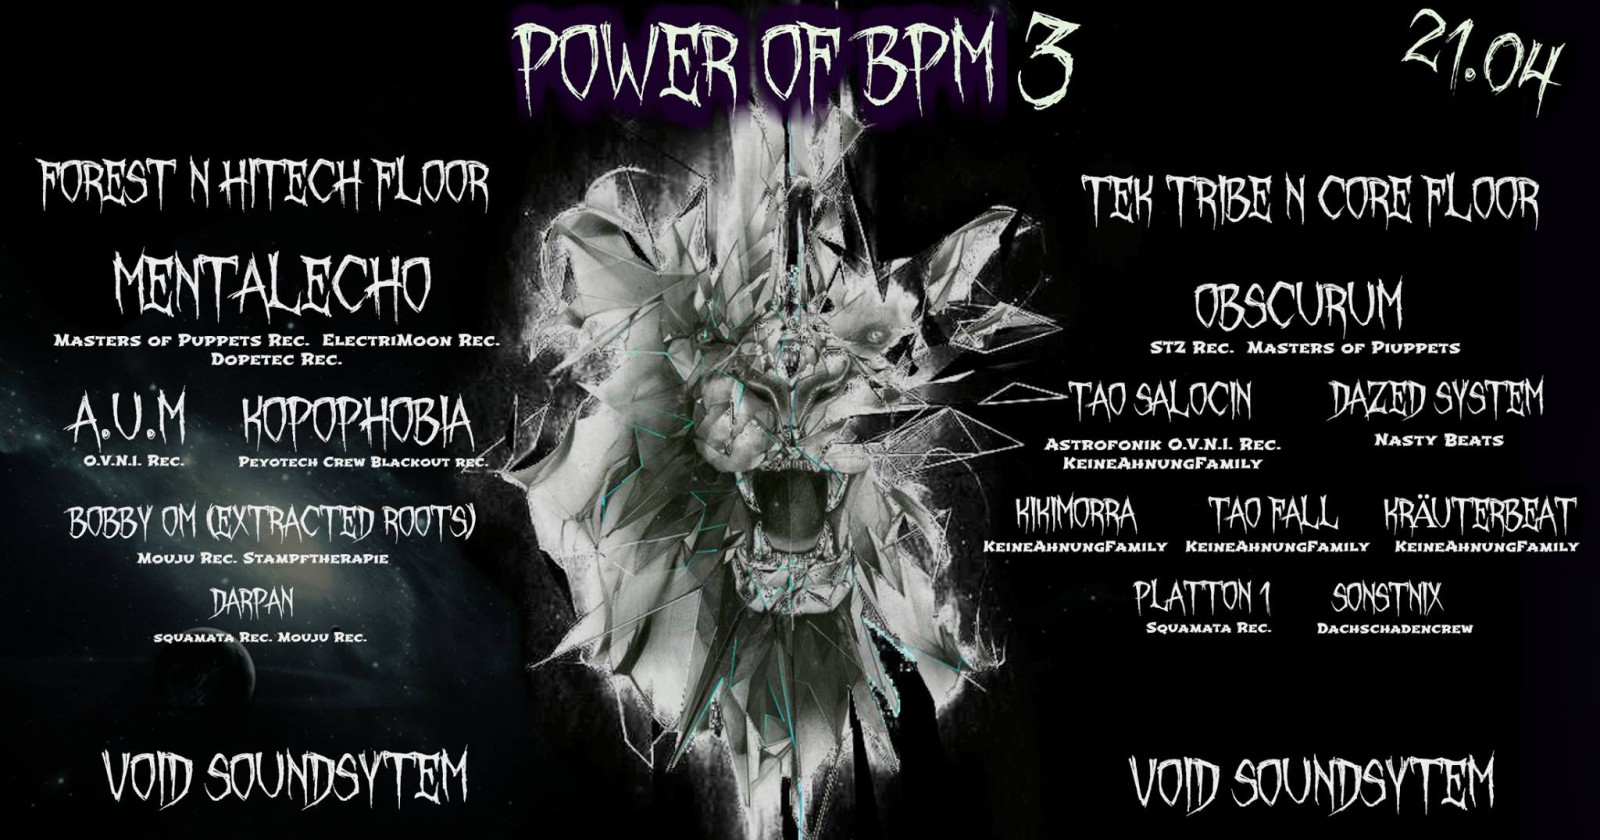 power of bpm